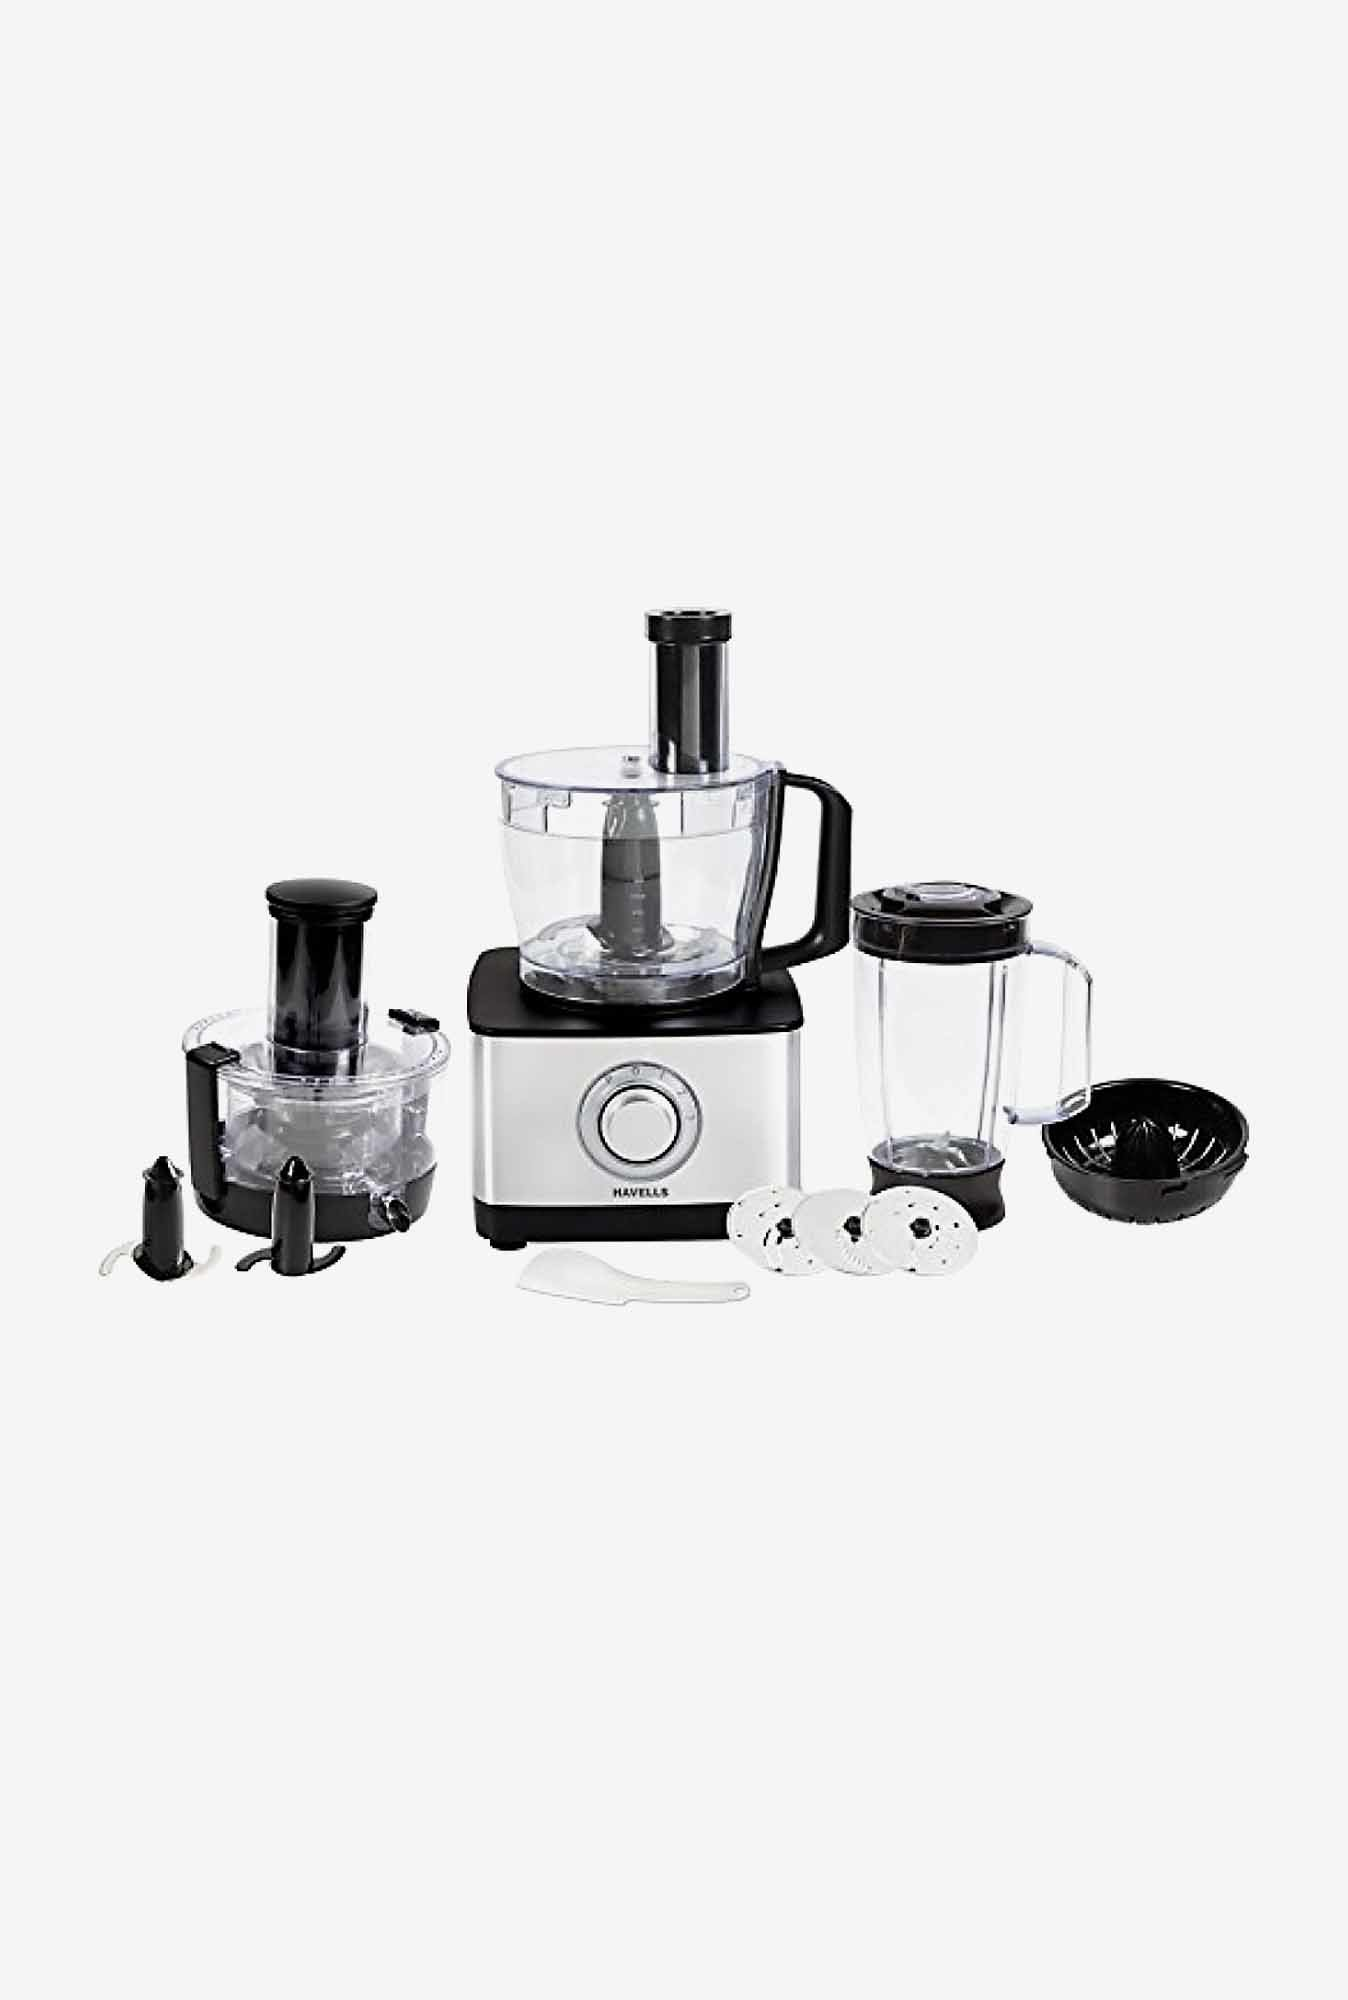 Havells Convenio GHFFPAVK080 800W Food Processor (Black)